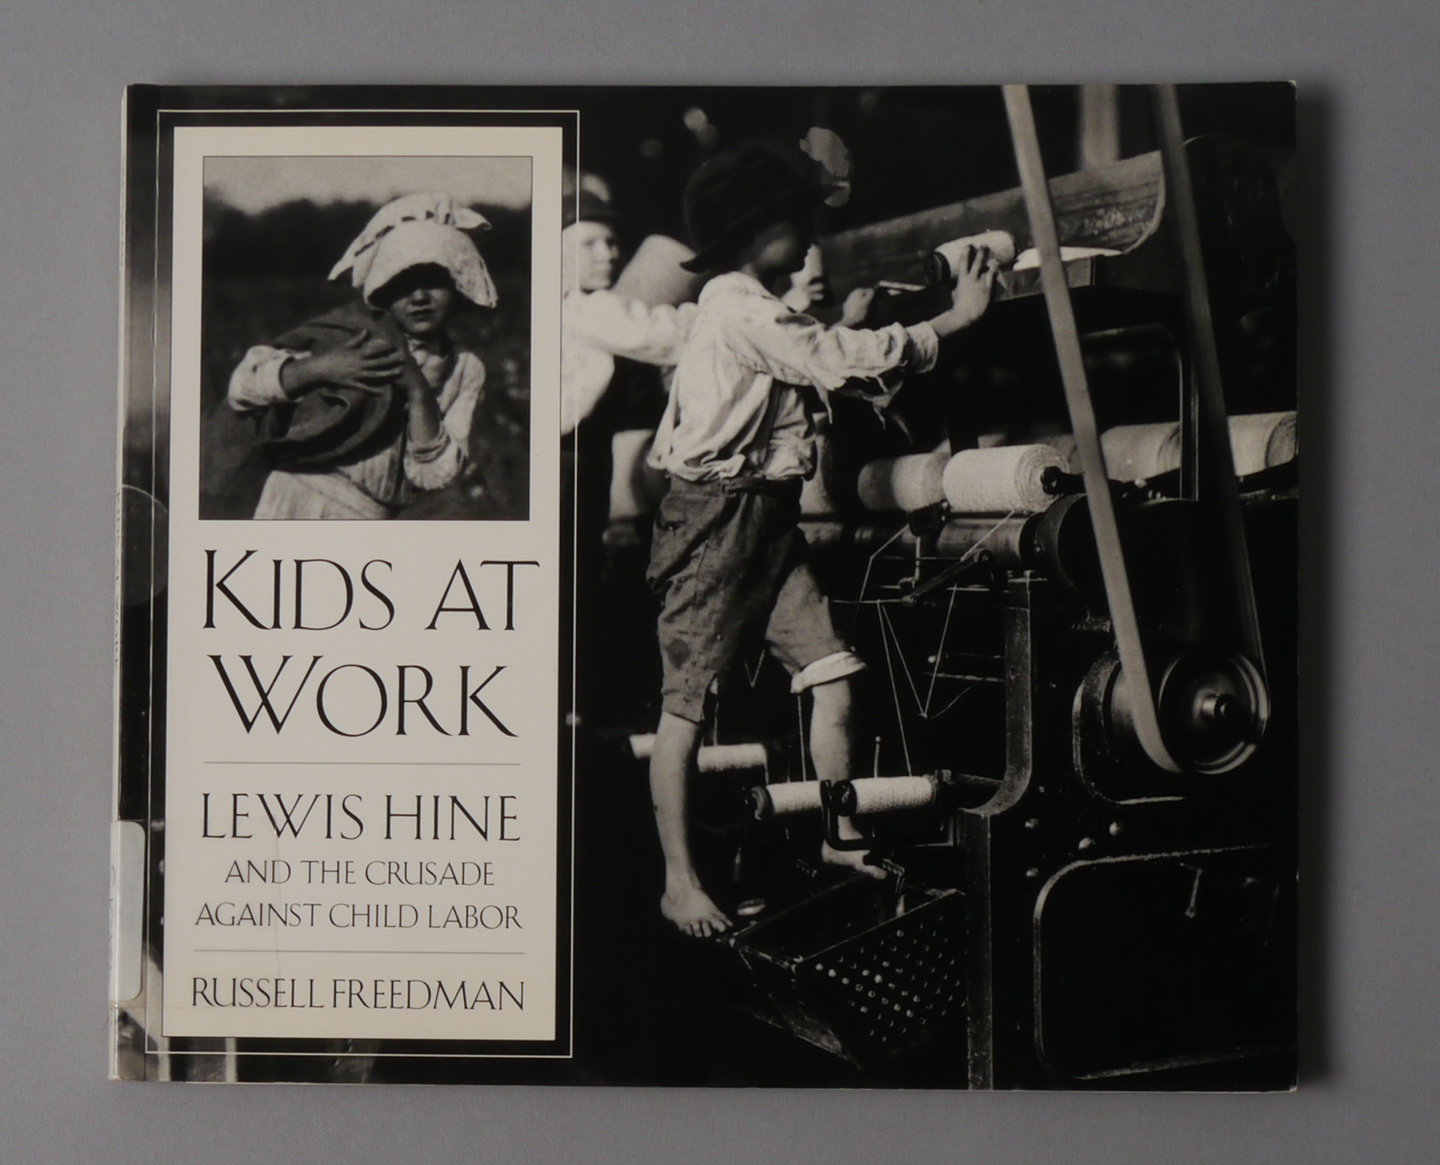 Kids At Work: Lewis Hine and the Crusade Against Child Labor.